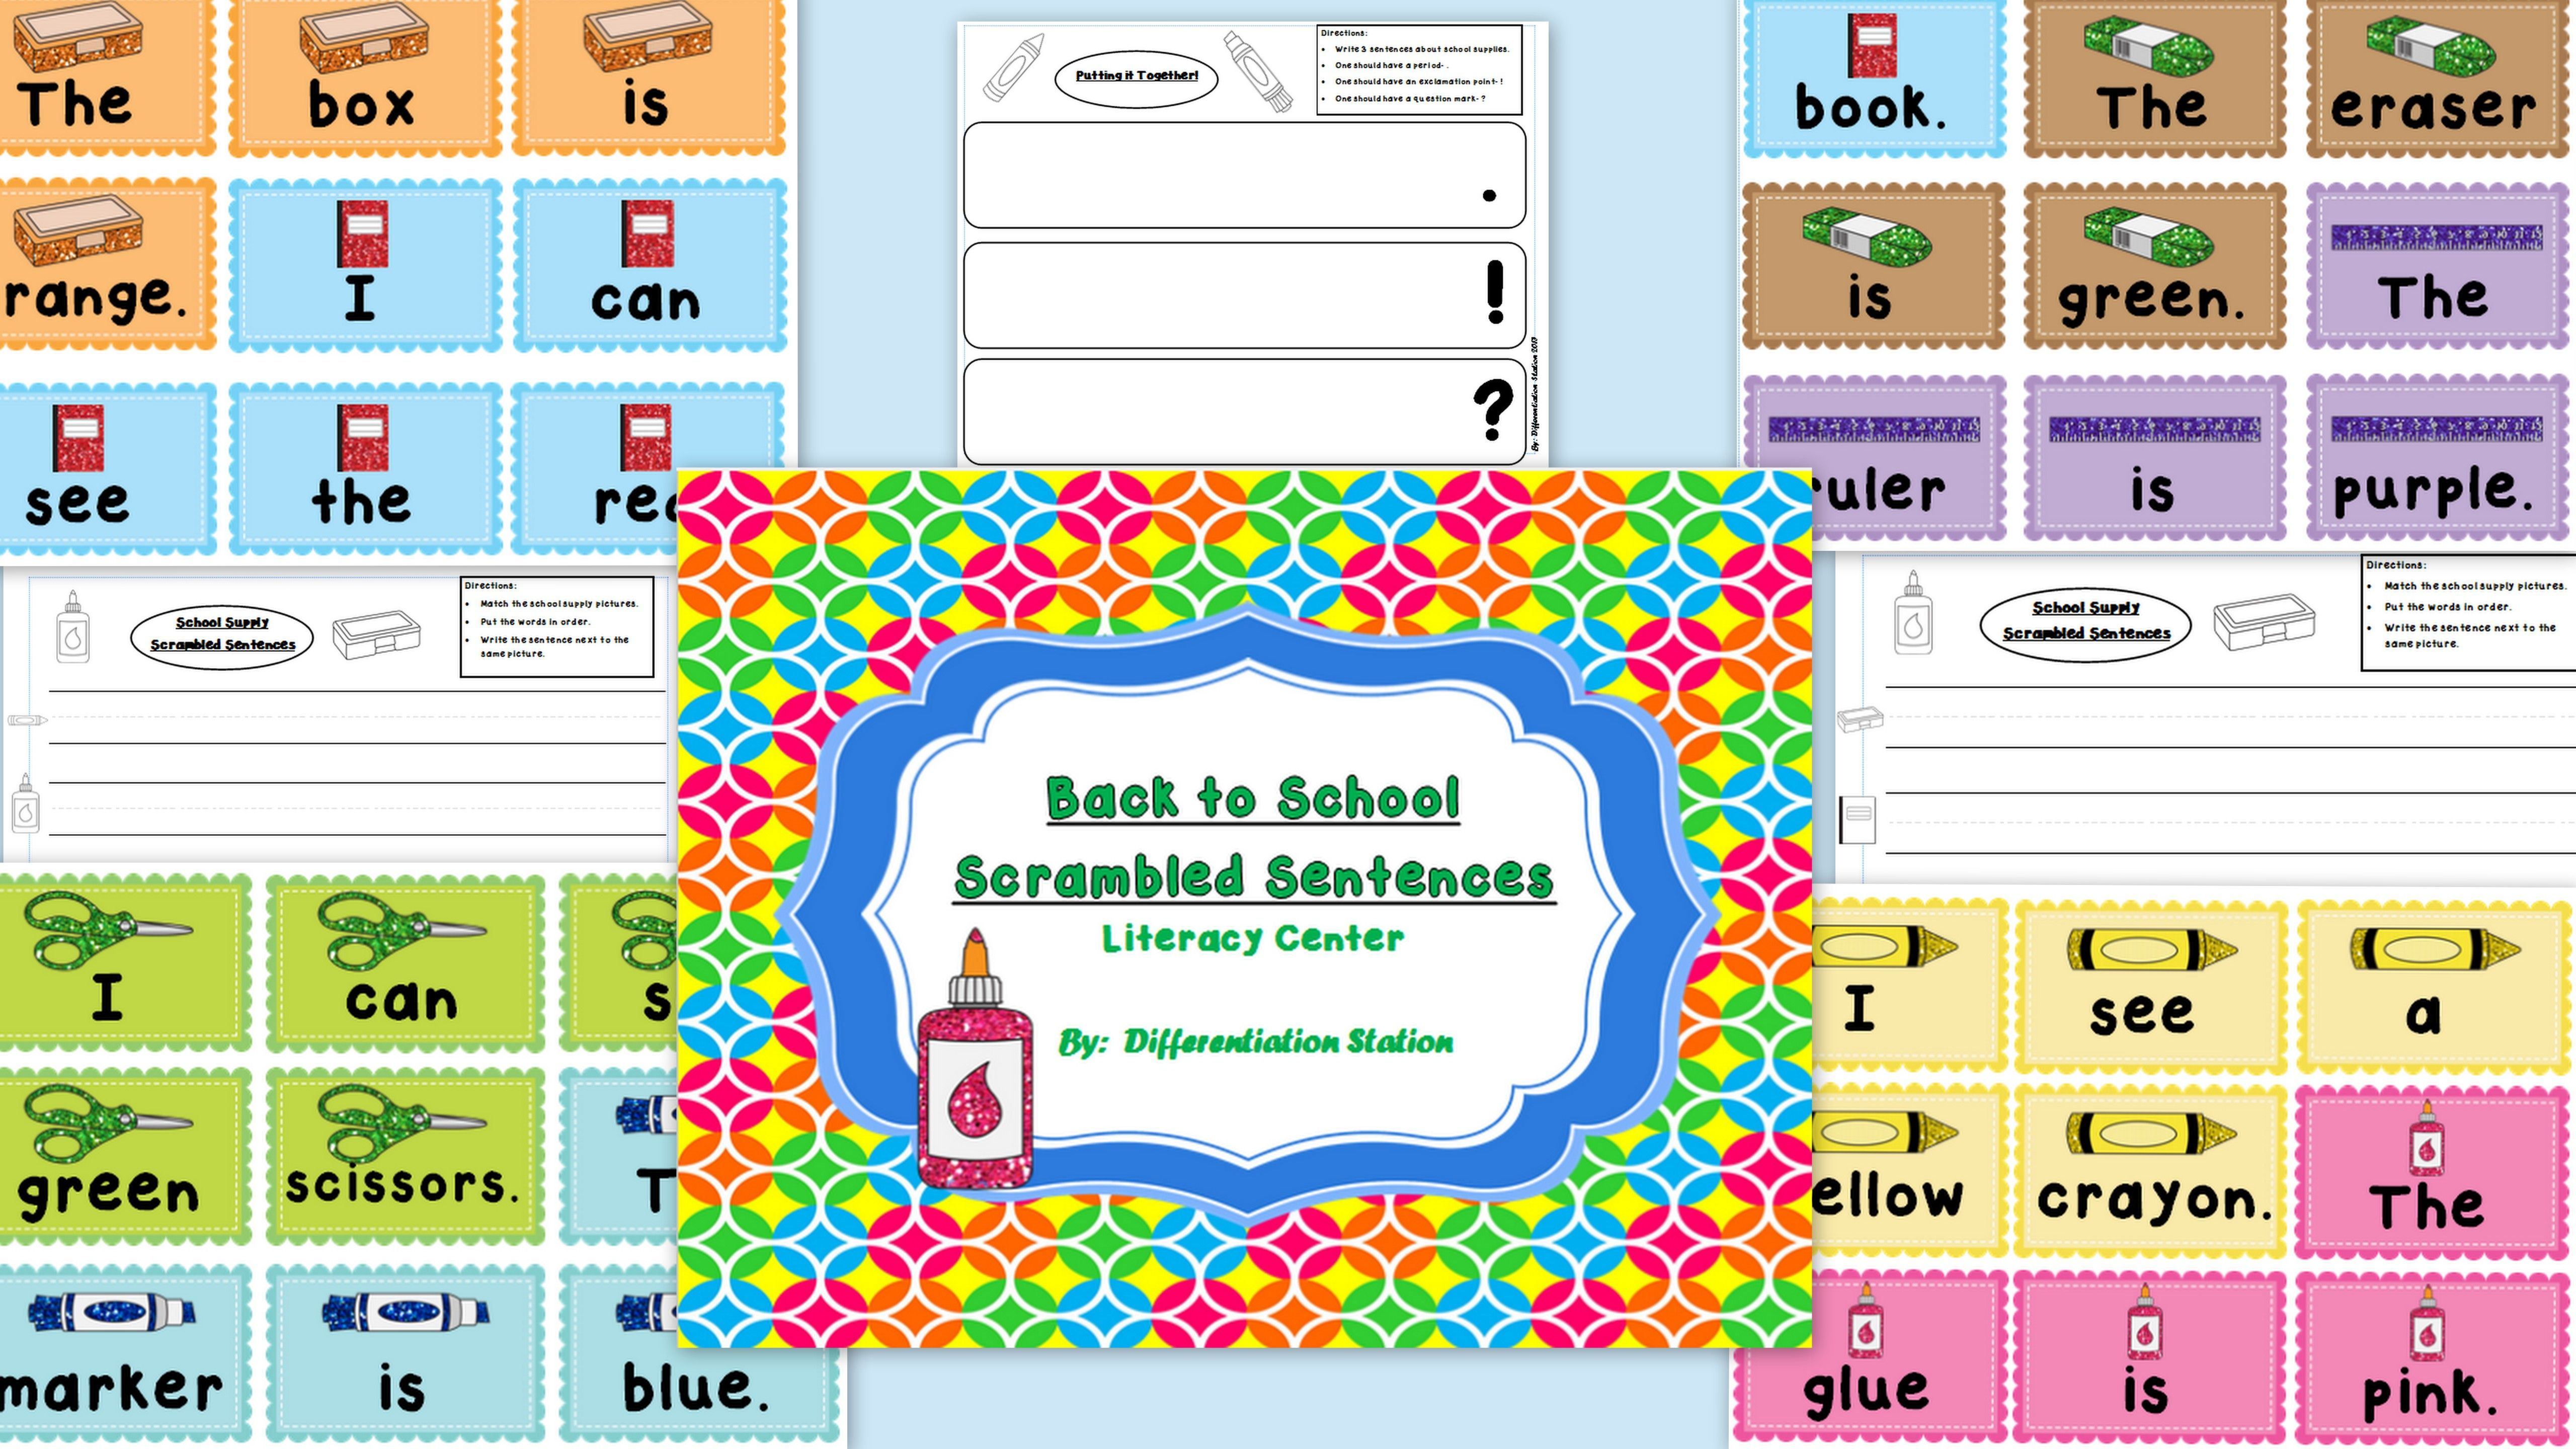 Free Sentence Scramble Kindergarten Worksheet